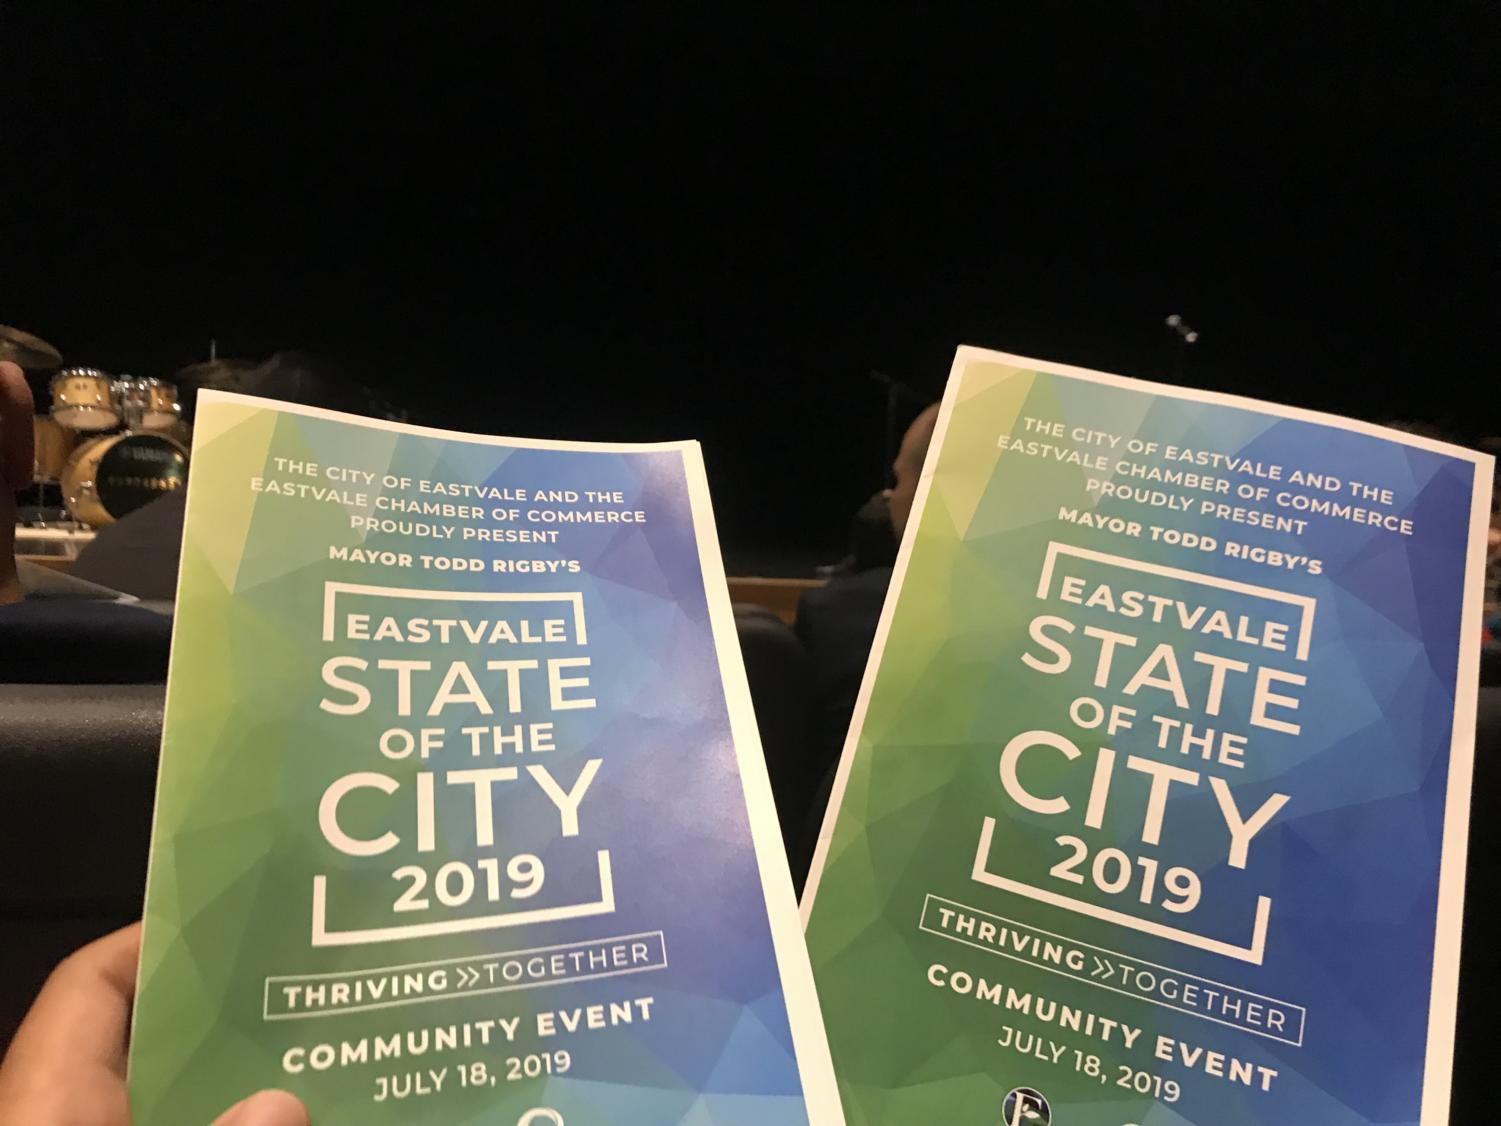 Pictured above are the programs from the State of the City